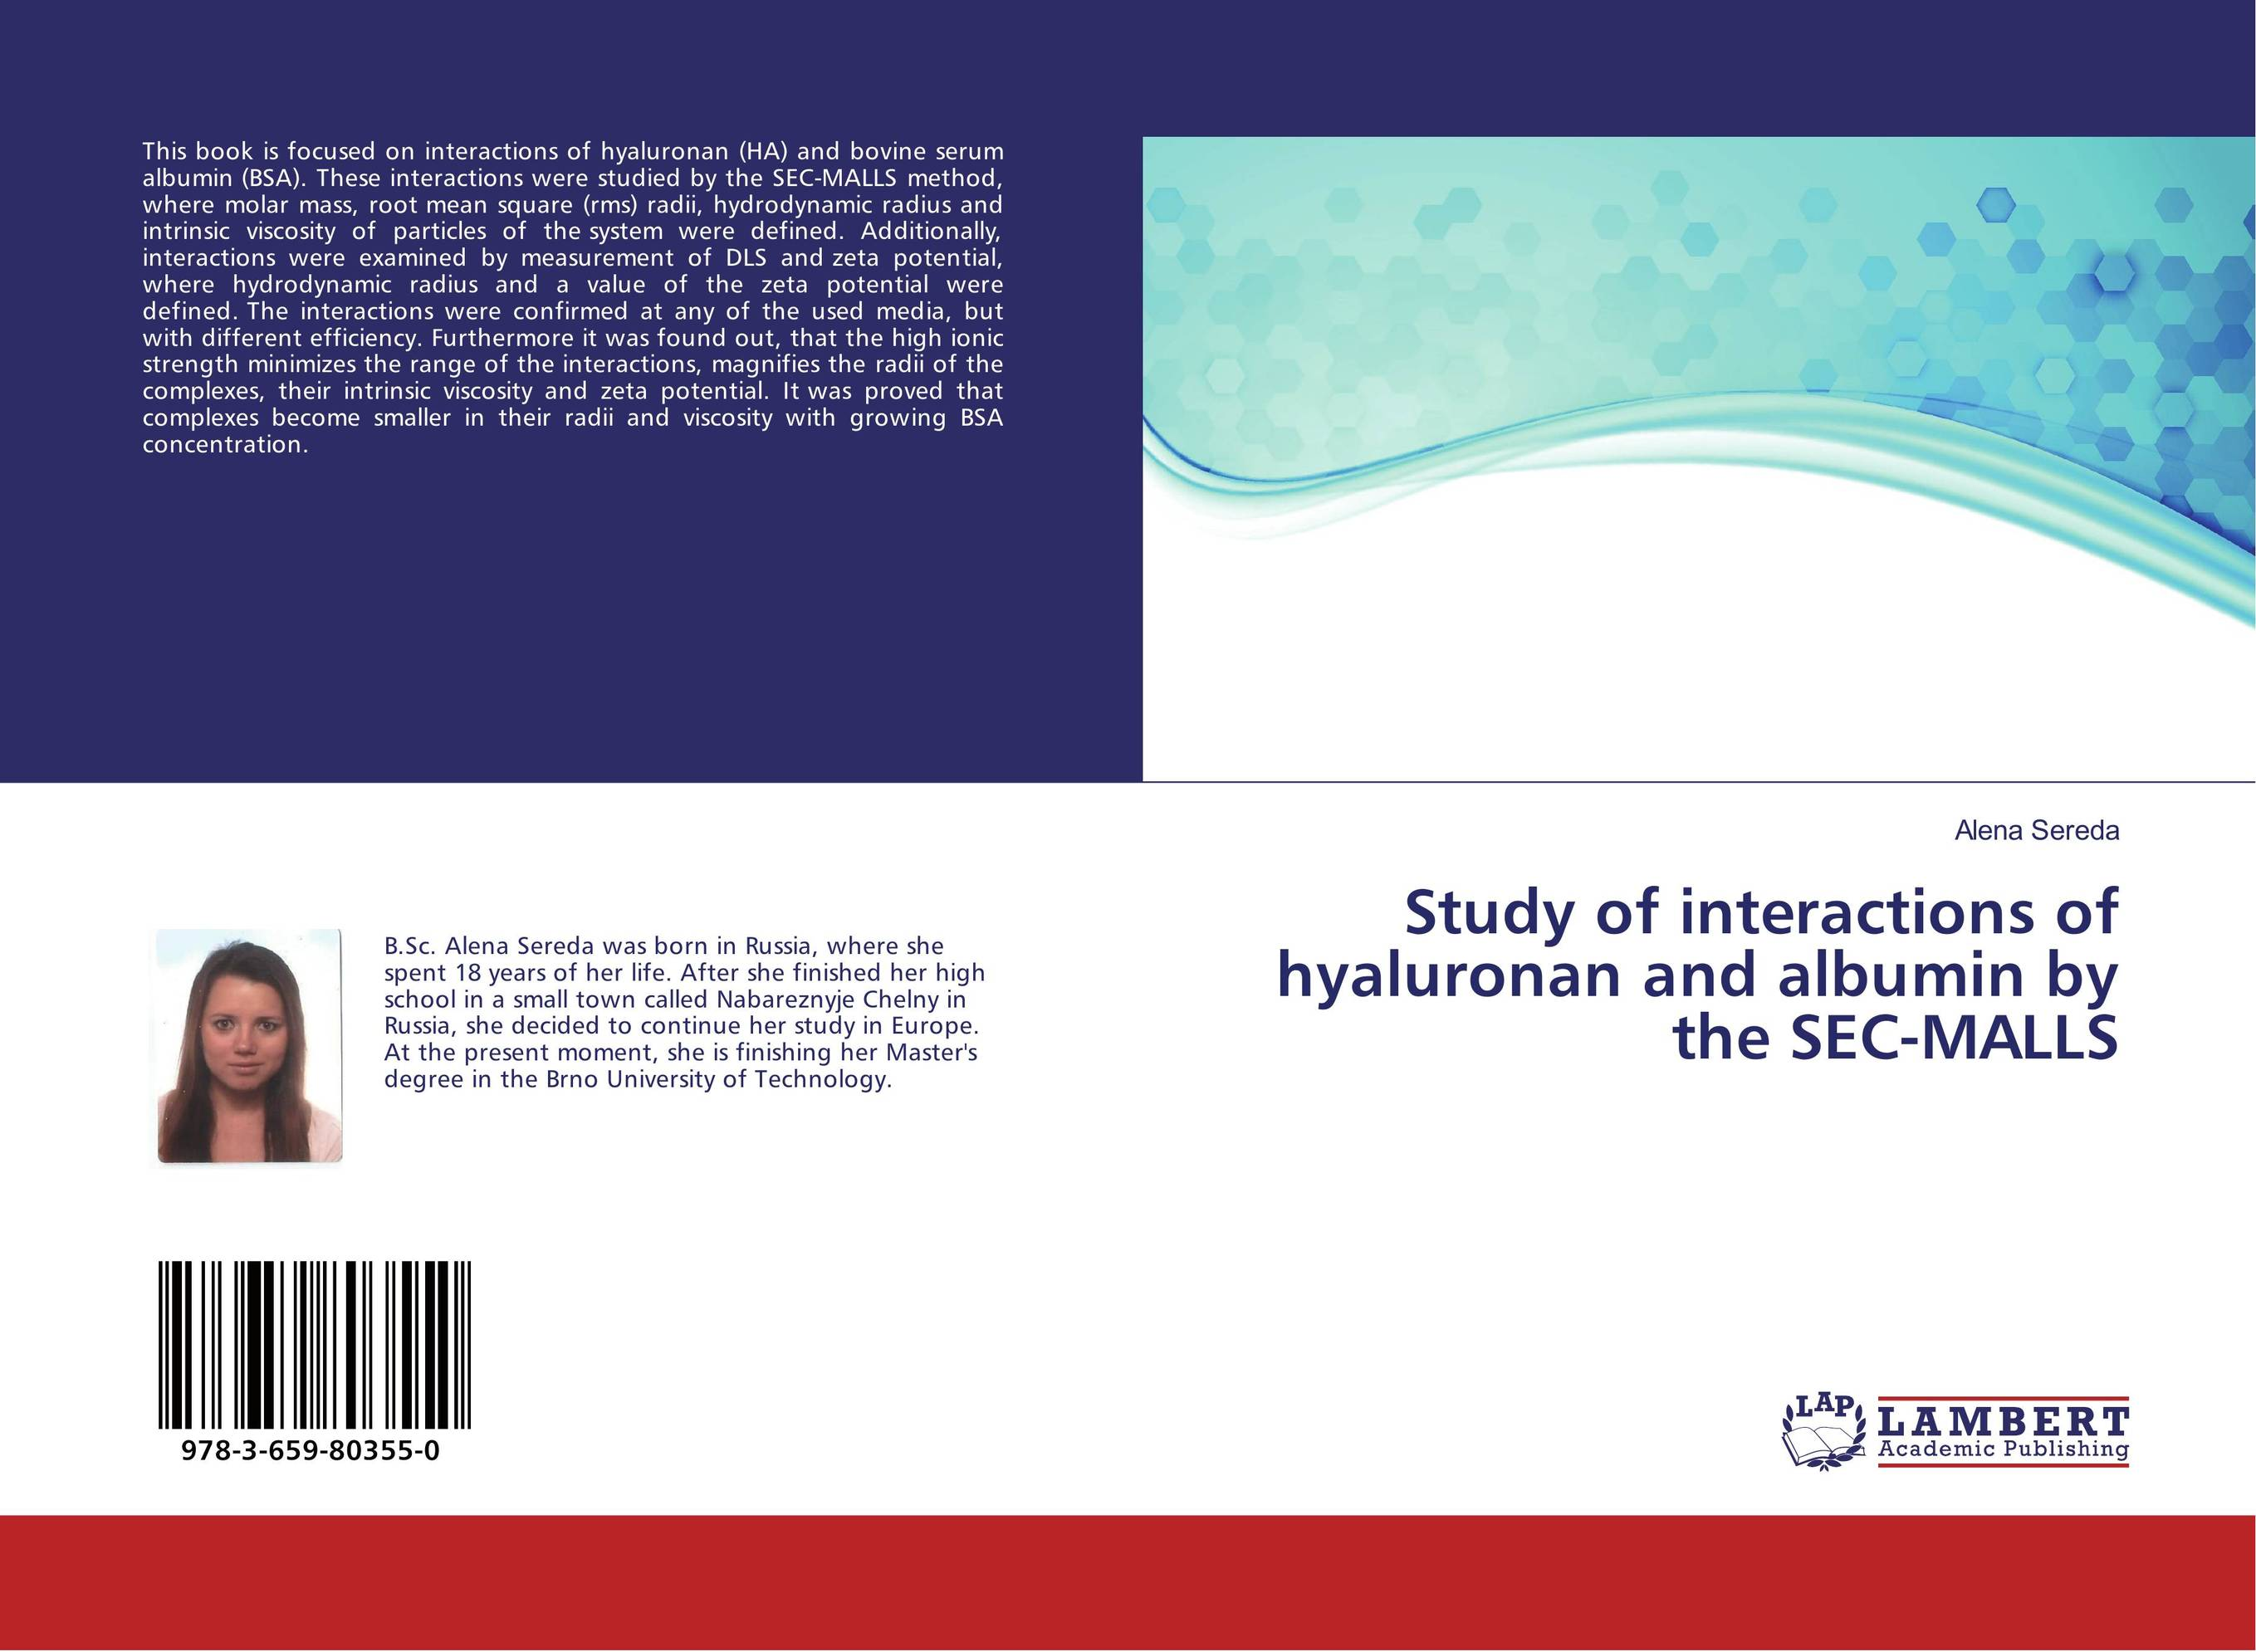 Study of interactions of hyaluronan and albumin by the SEC-MALLS root and canal morphology of third molar